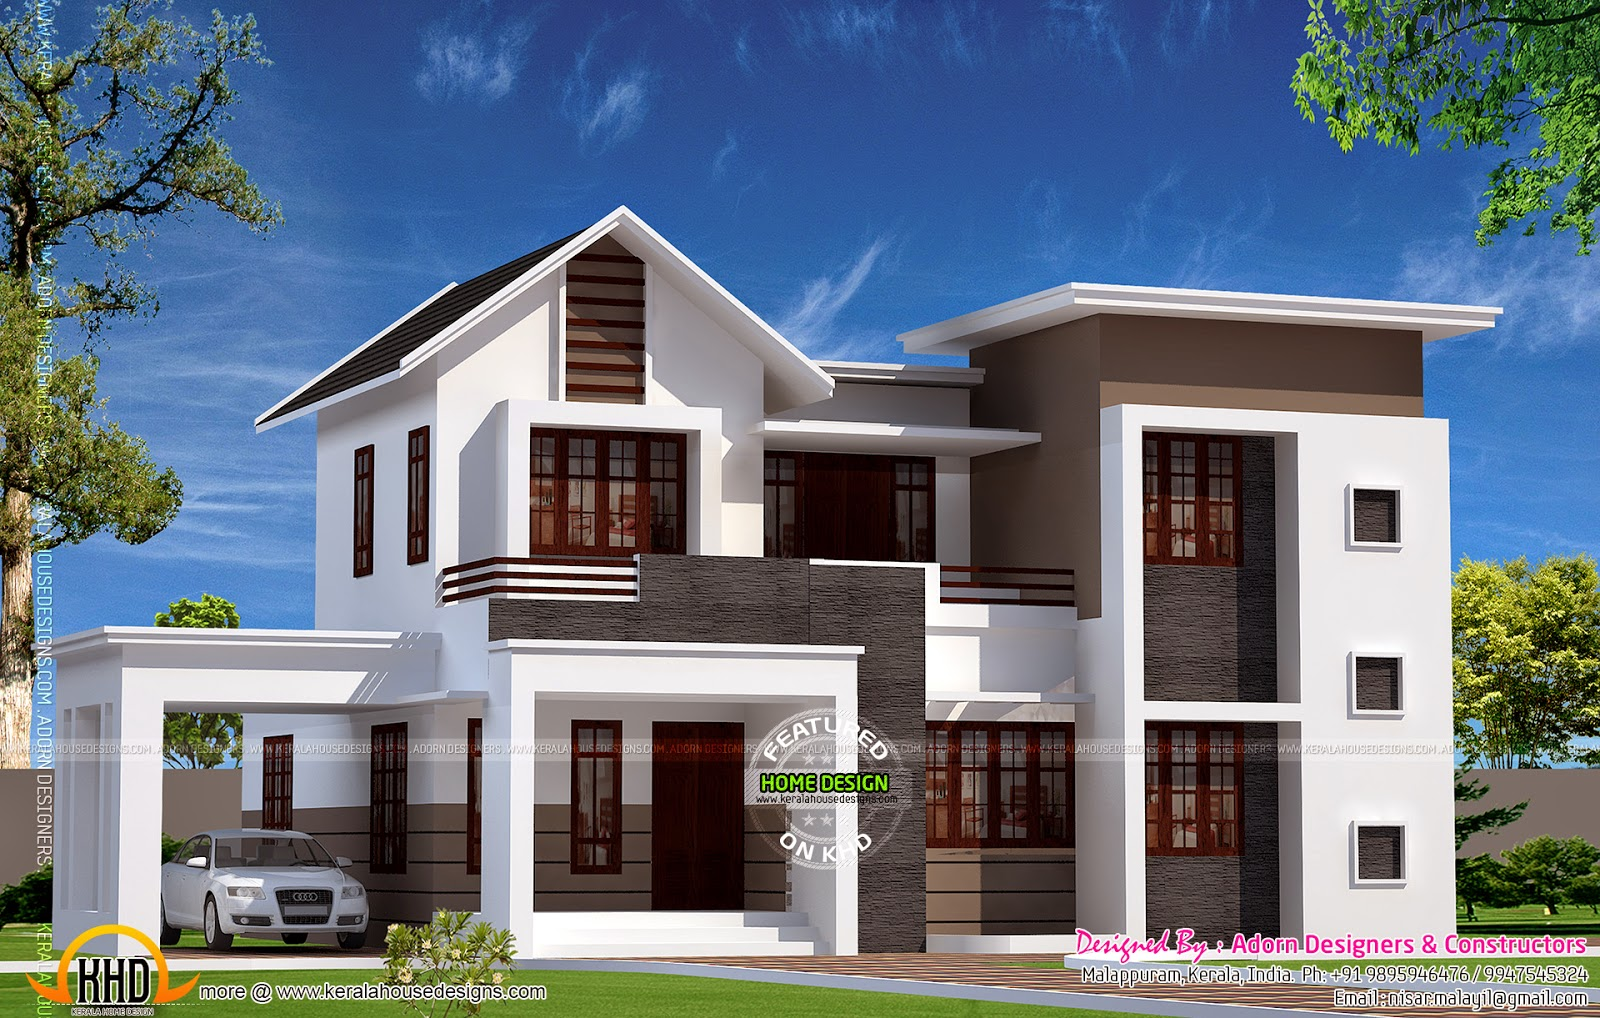 New house design in 1900 sq feet kerala home design and for House design outside view